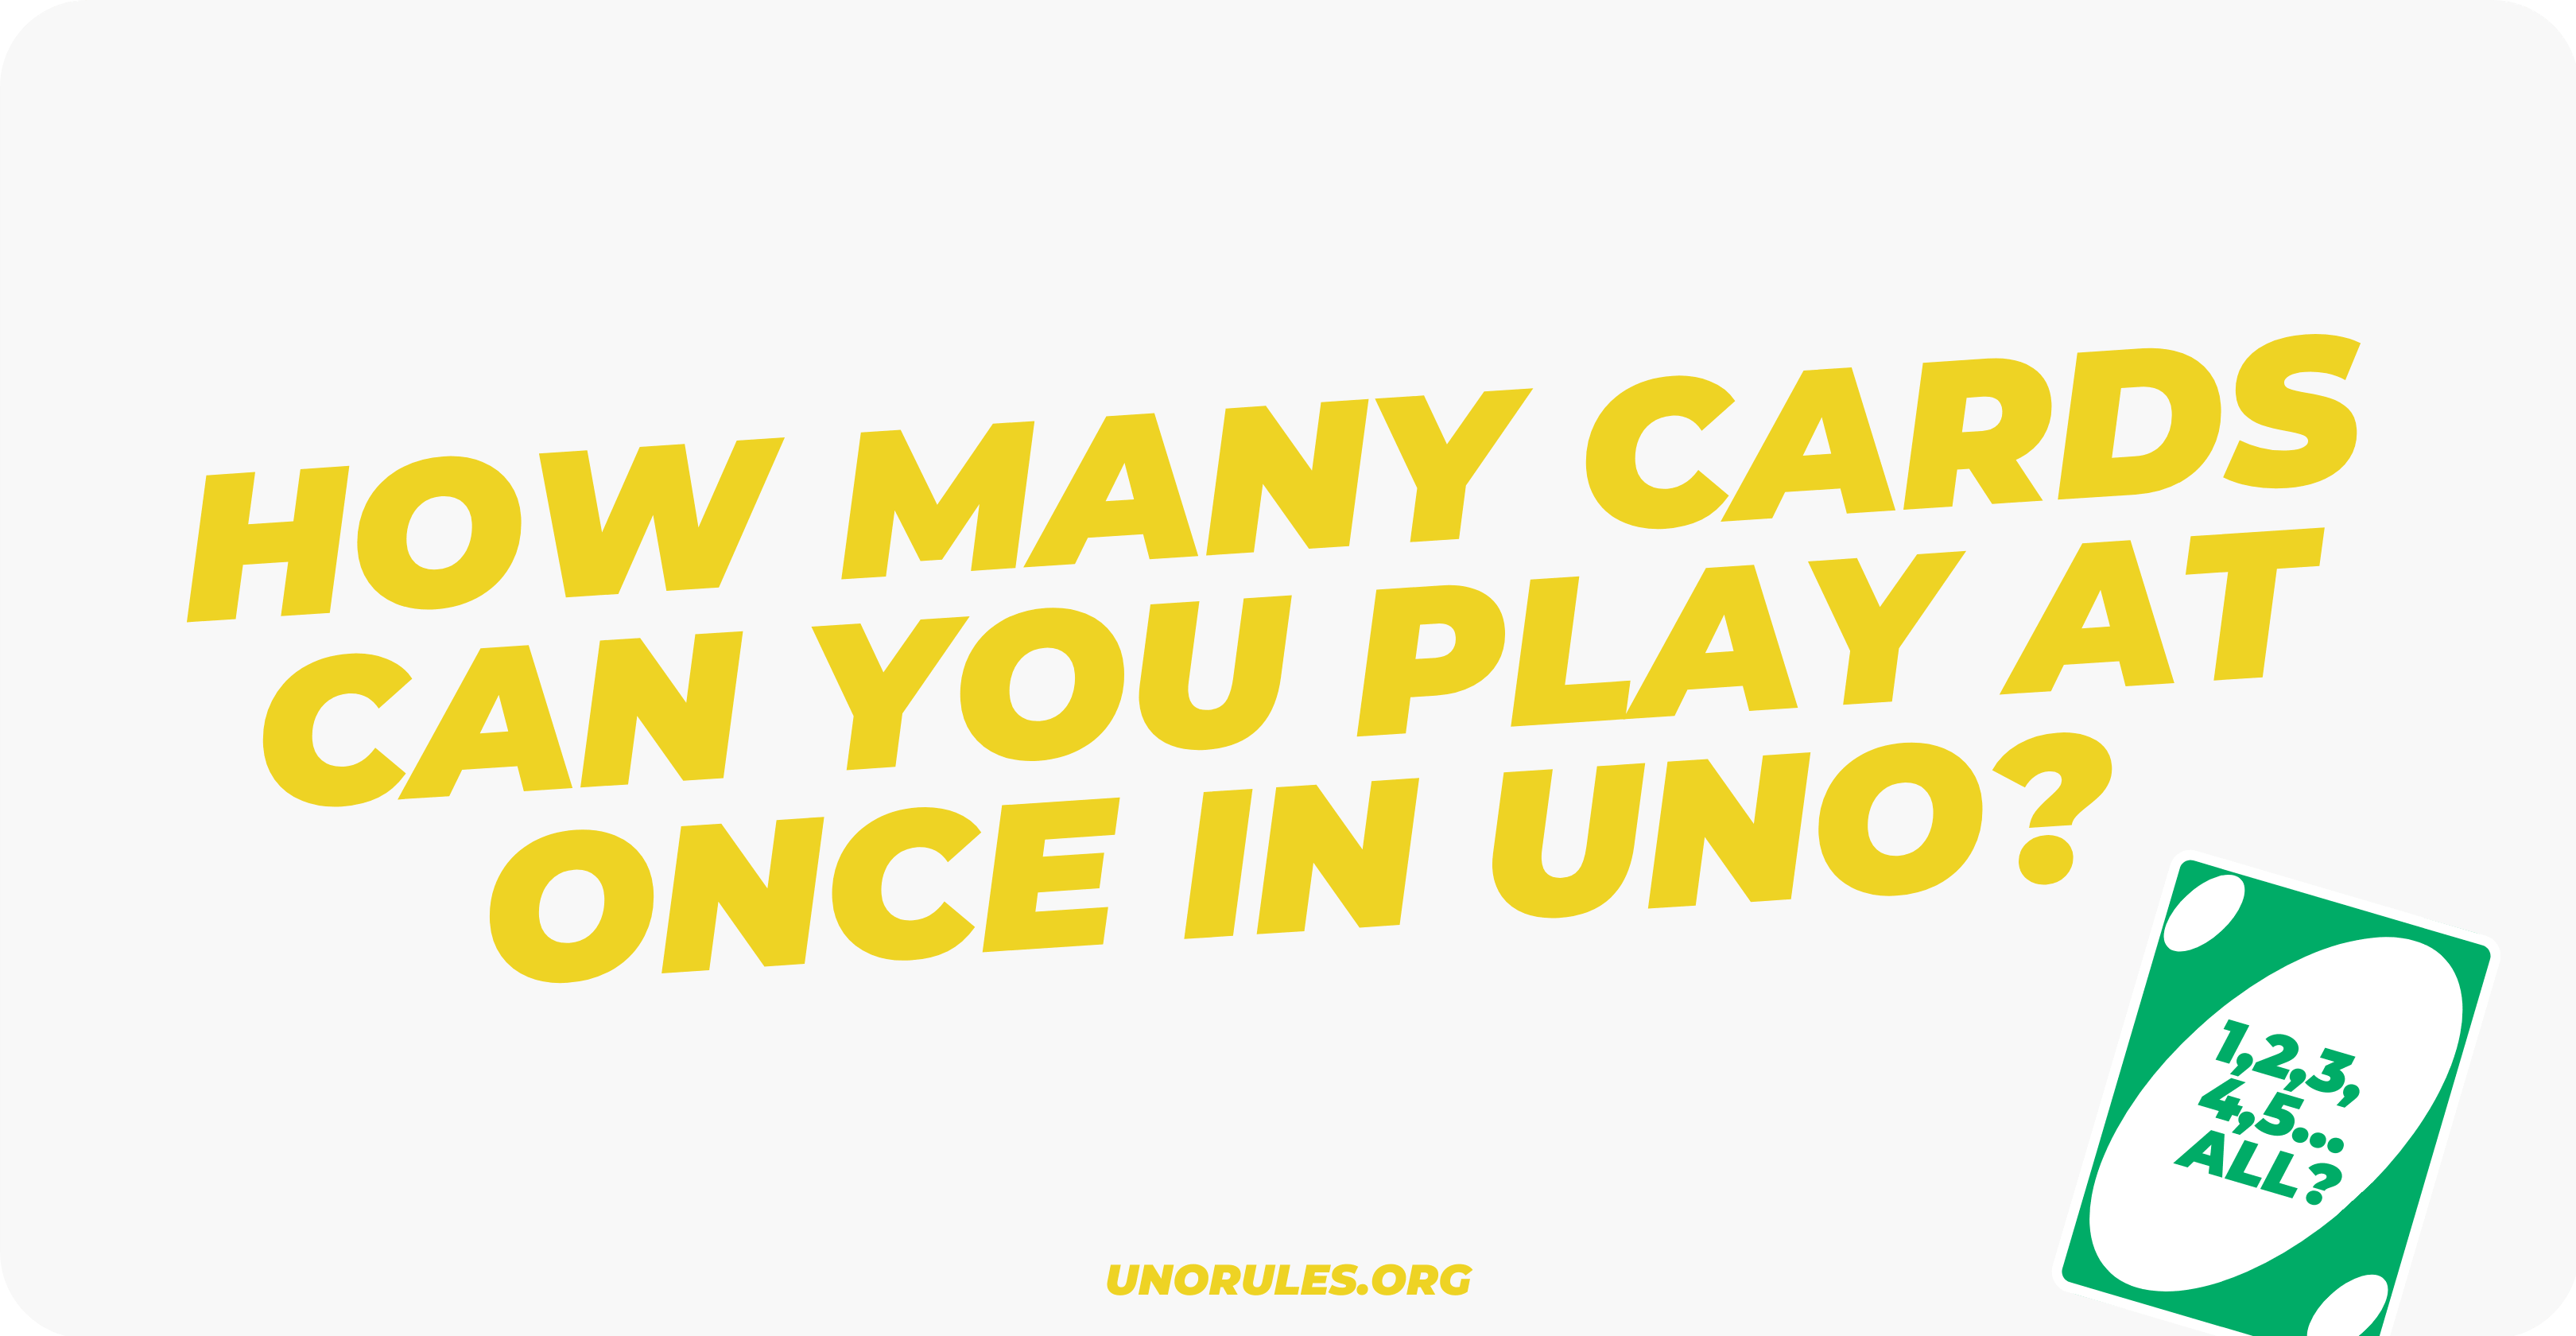 How many cards can you play at once in uno